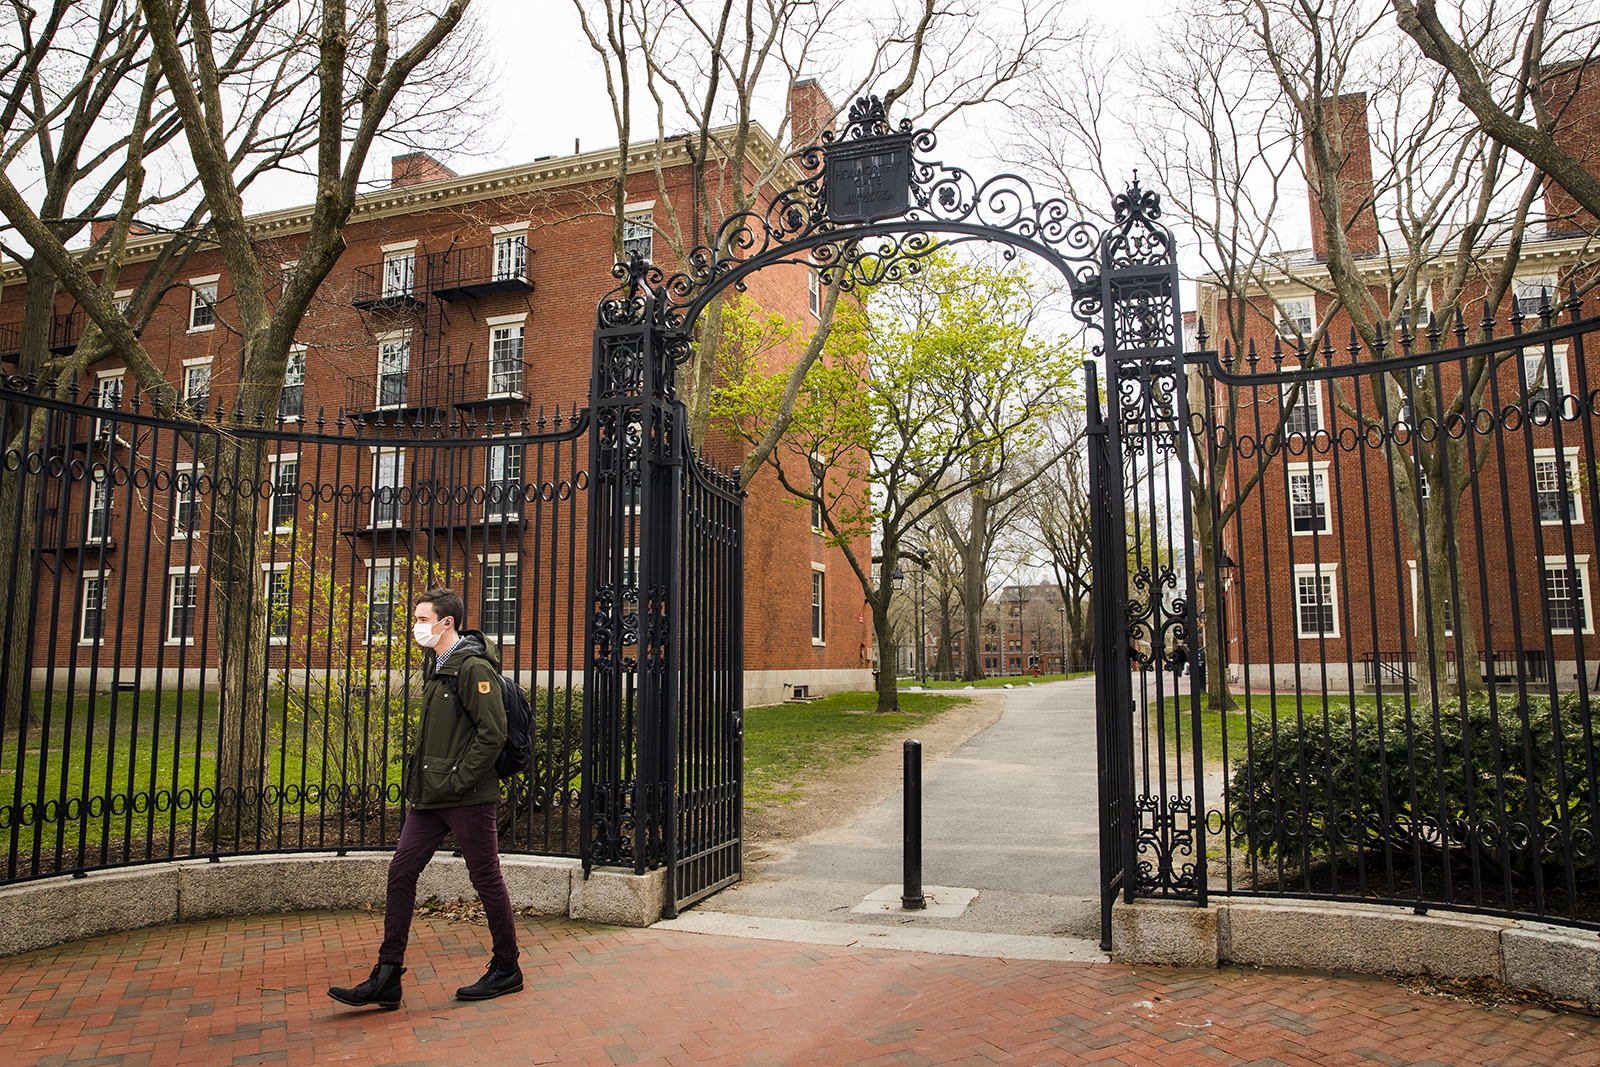 A pedestrian wearing a protective mask exits Harvard Yard on the closed Harvard University campus in Cambridge, Massachusetts, on April 20.